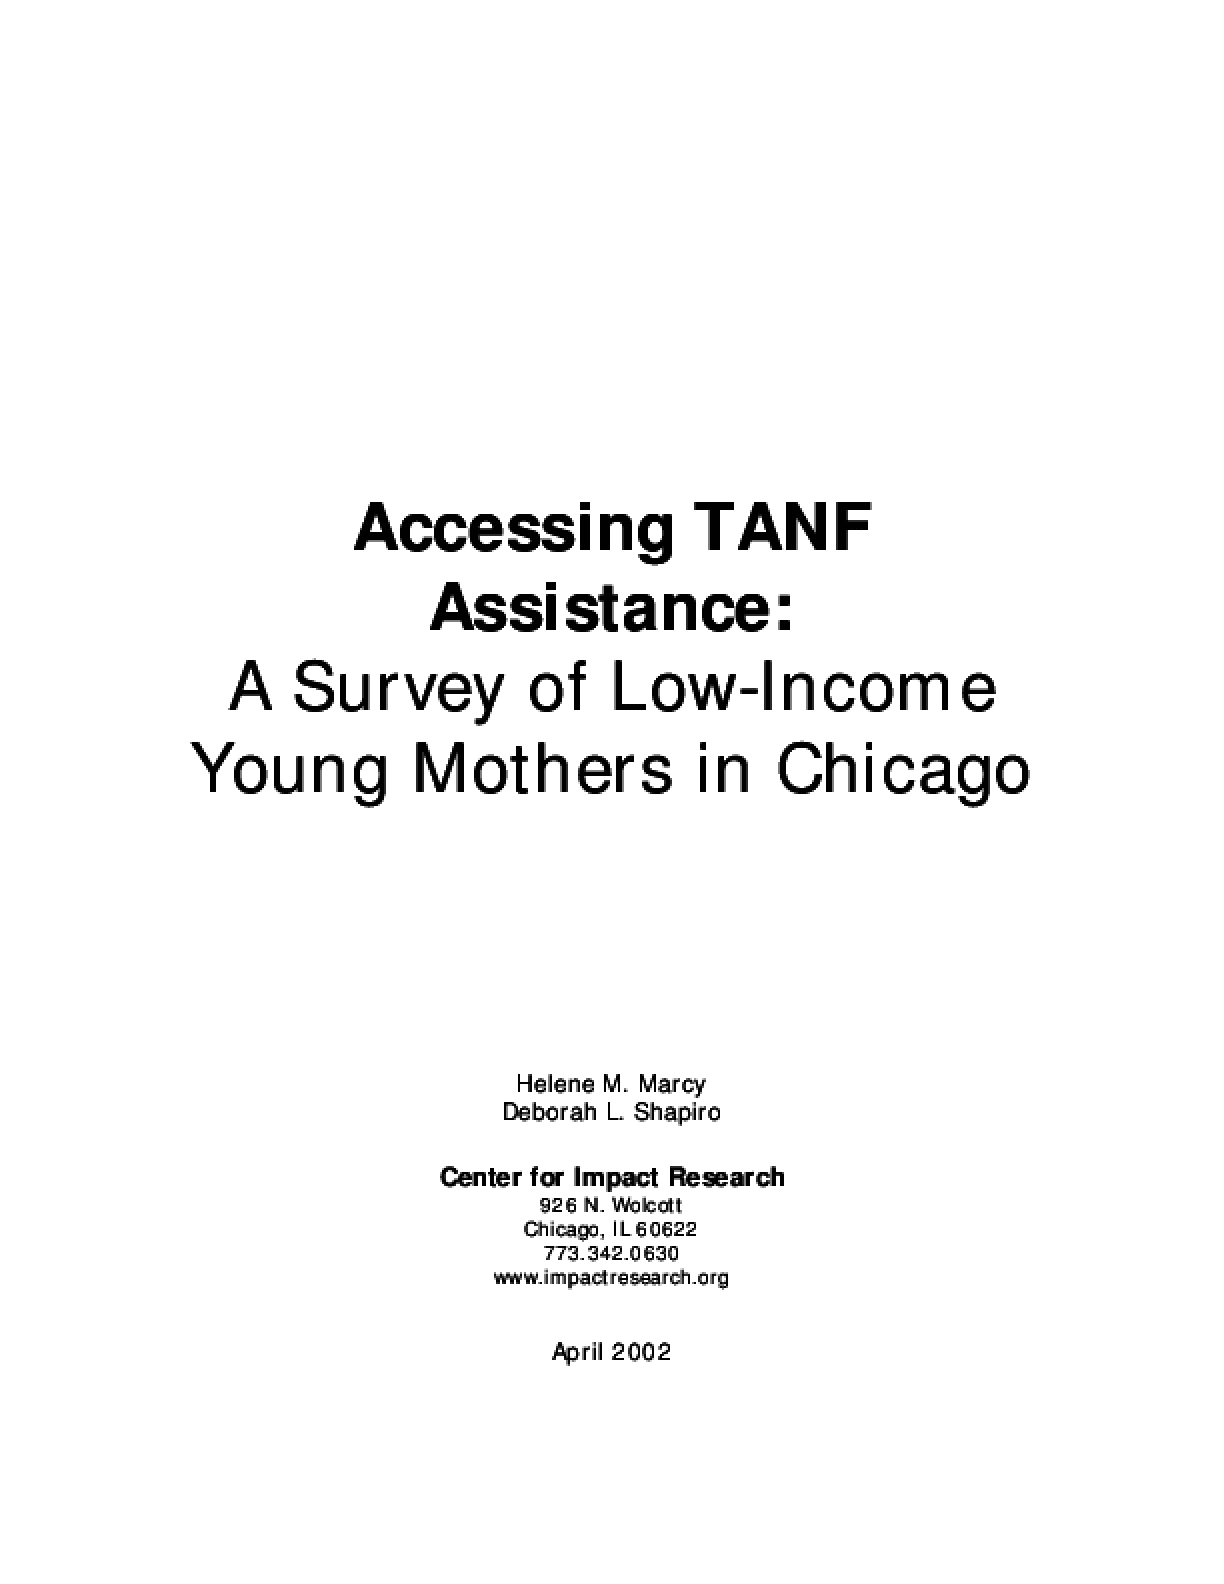 Accessing TANF Assistance: A Survey of Low-Income Young Mothers in Chicago